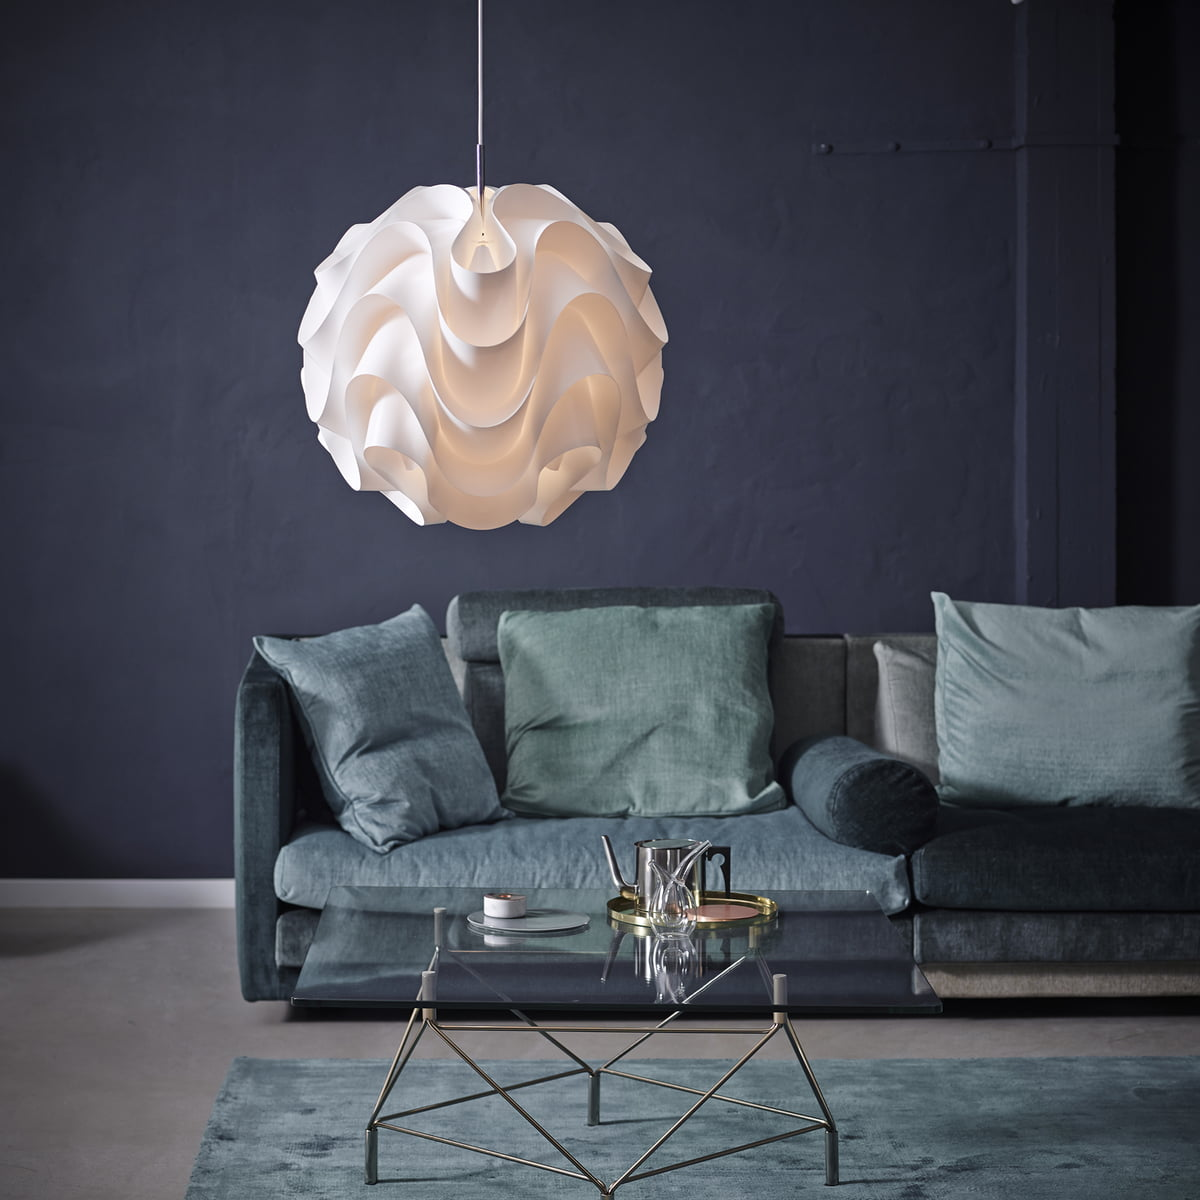 Buy the Sinus Pendant Lamp from Le Klint